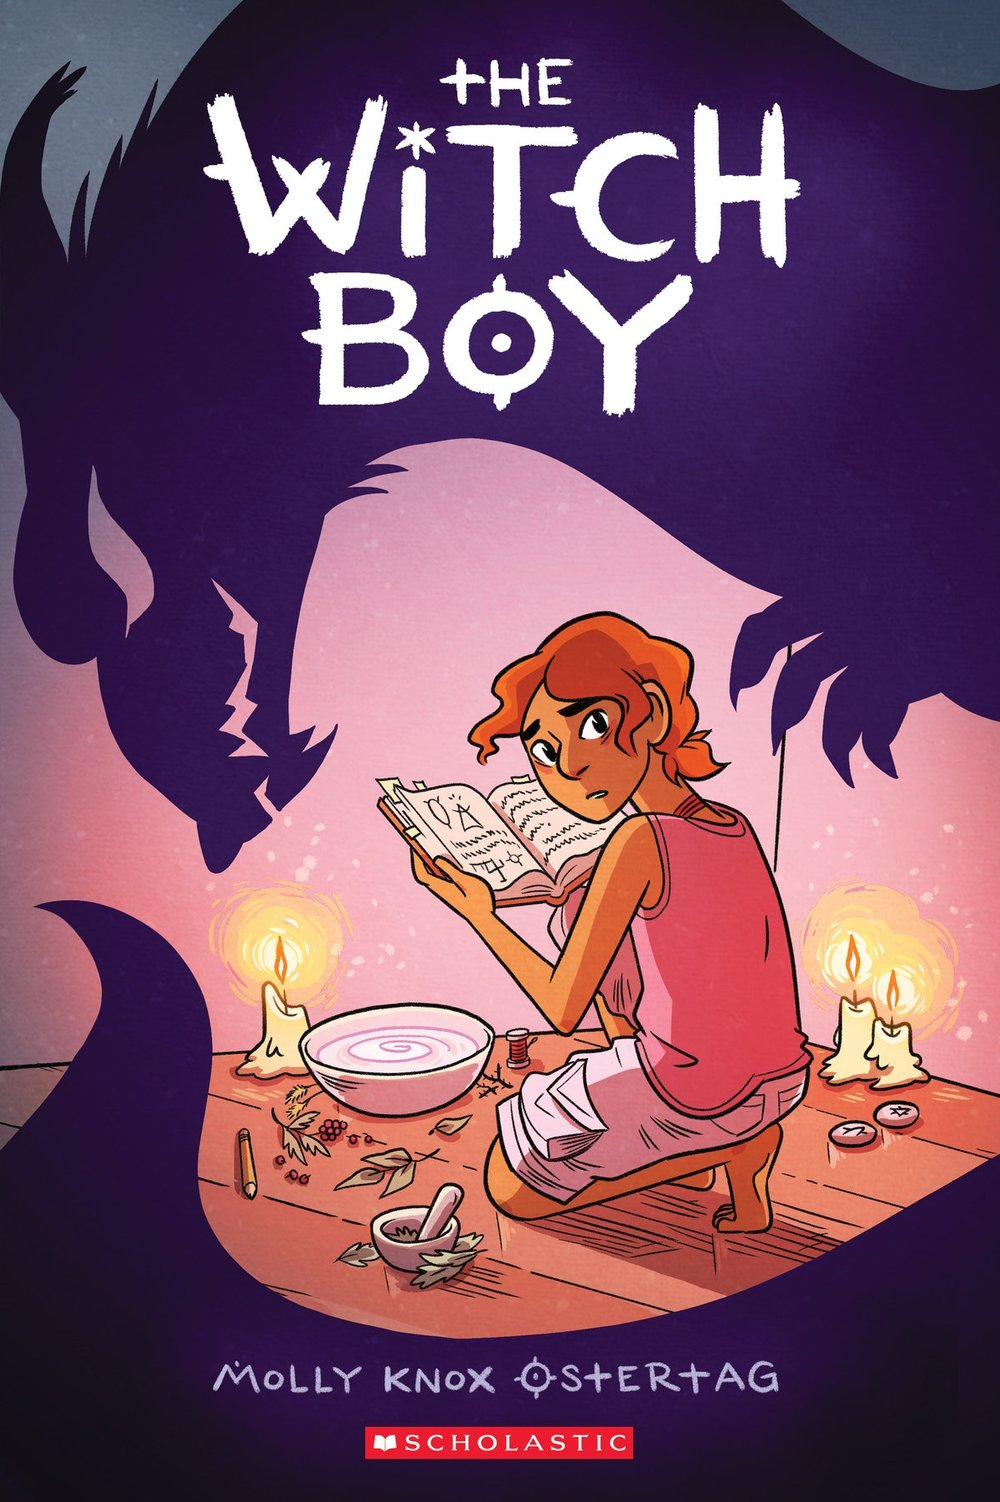 - THE WITCH BOY(Scholastic Press, Oct. 2017)Film/TV: Fox AnimationSUB RIGHTS: rights@scholastic.comGermany (Tokyopop GMBH)Italy (Editrice Il Castoro)In thirteen-year-old Aster's family, all the girls are raised to be witches, while boys grow up to be shapeshifters. Anyone who dares cross those lines is exiled. Unfortunately for Aster, he still hasn't shifted . . . and he's still fascinated by witchery, no matter how forbidden it might be.When a mysterious danger threatens the other boys, Aster knows he can help -- as a witch. It will take the encouragement of a new friend, the non-magical and non-conforming Charlie, to convince Aster to try practicing his skills. And it will require even more courage to save his family . . . and be truly himself.